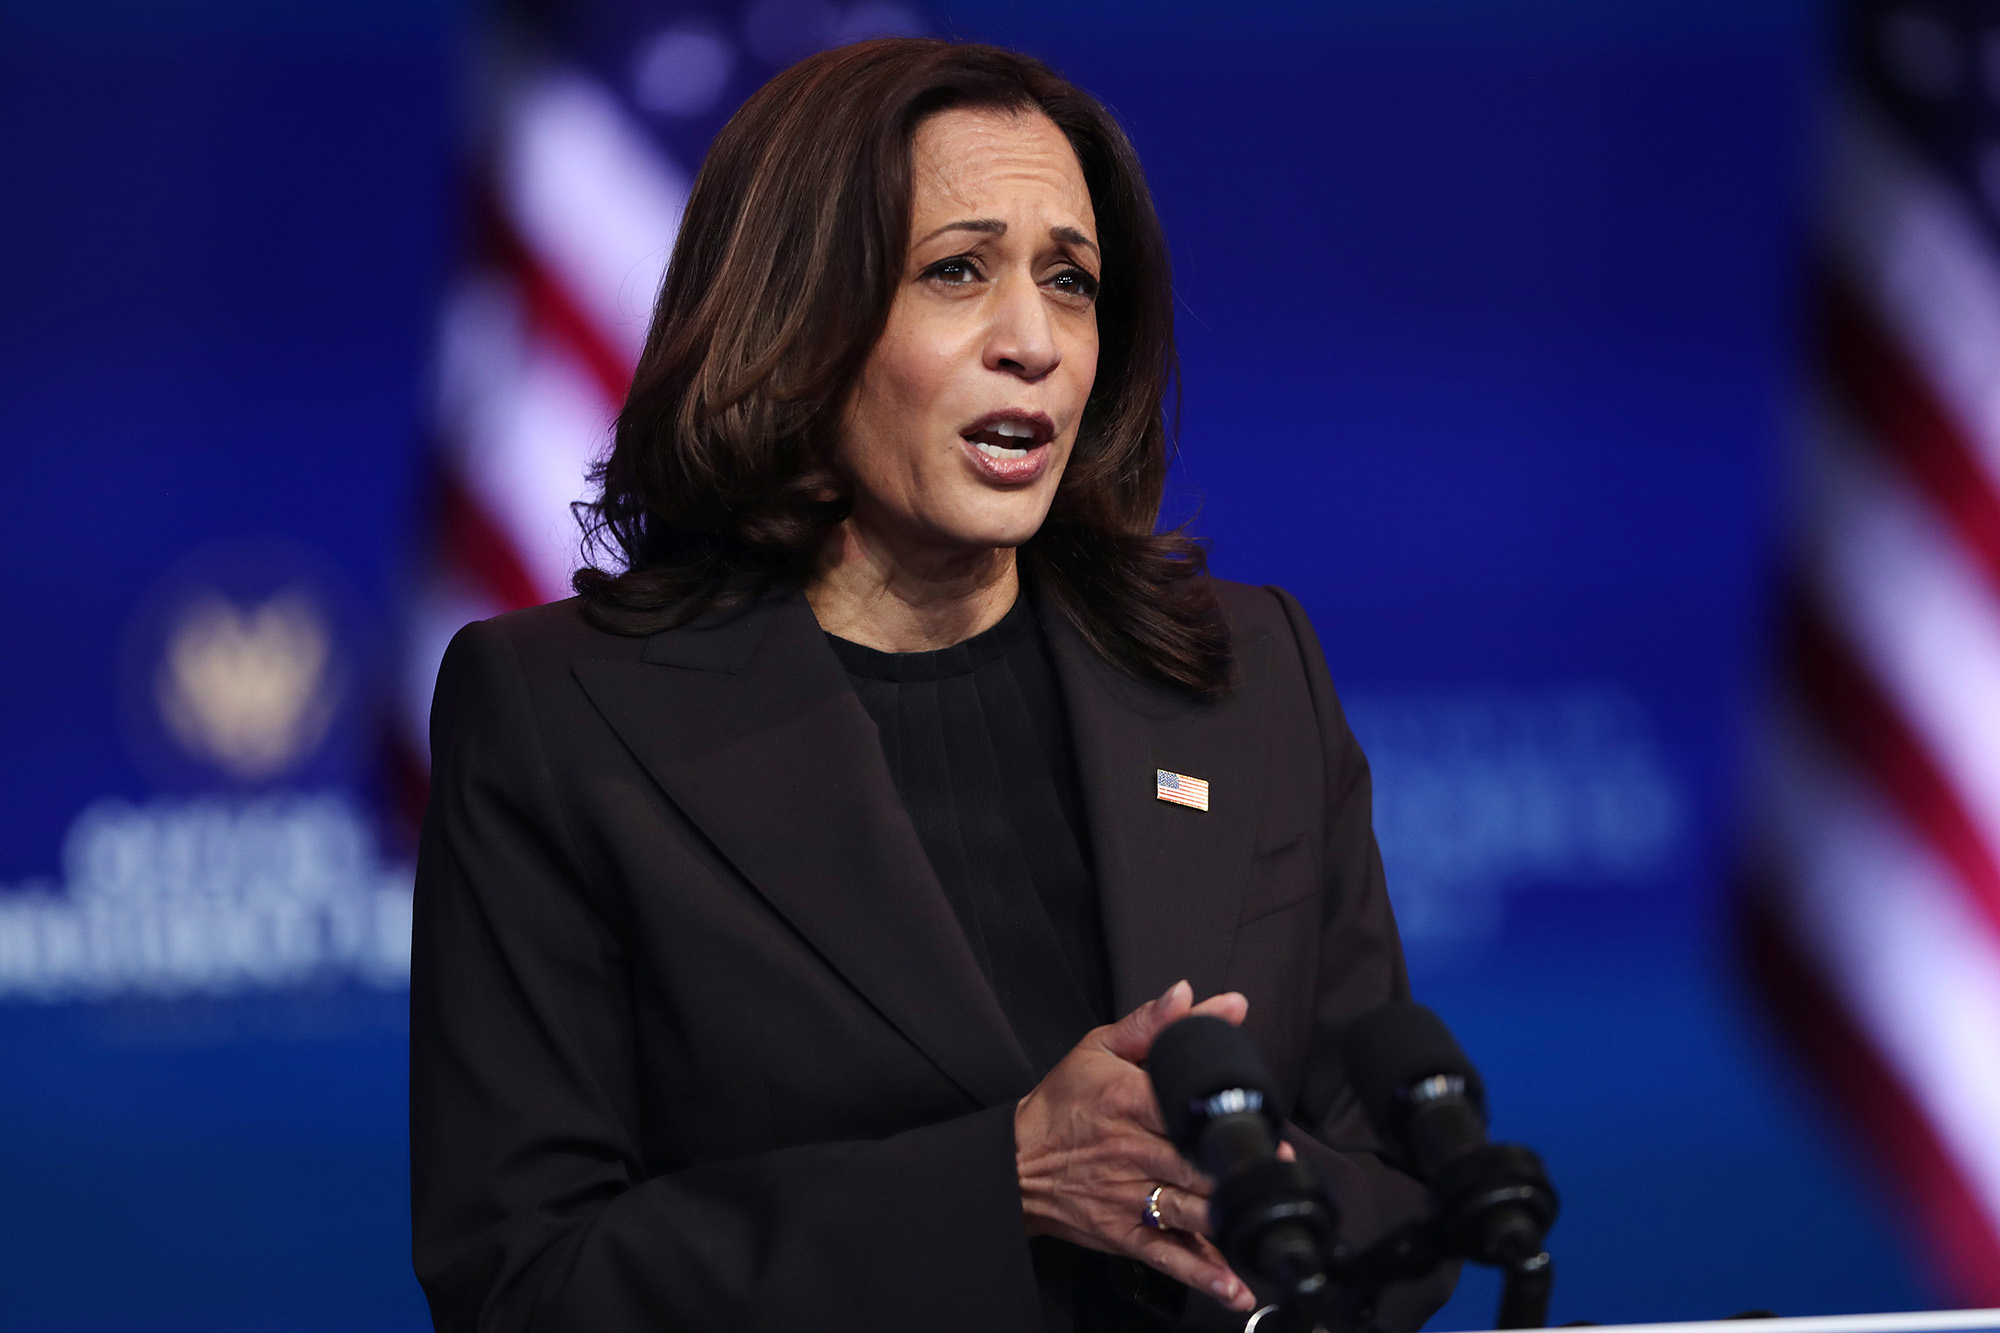 Vice President-elect Kamala Harris addresses the press on November 10, at the Queen Theater in Wilmington, Delaware.